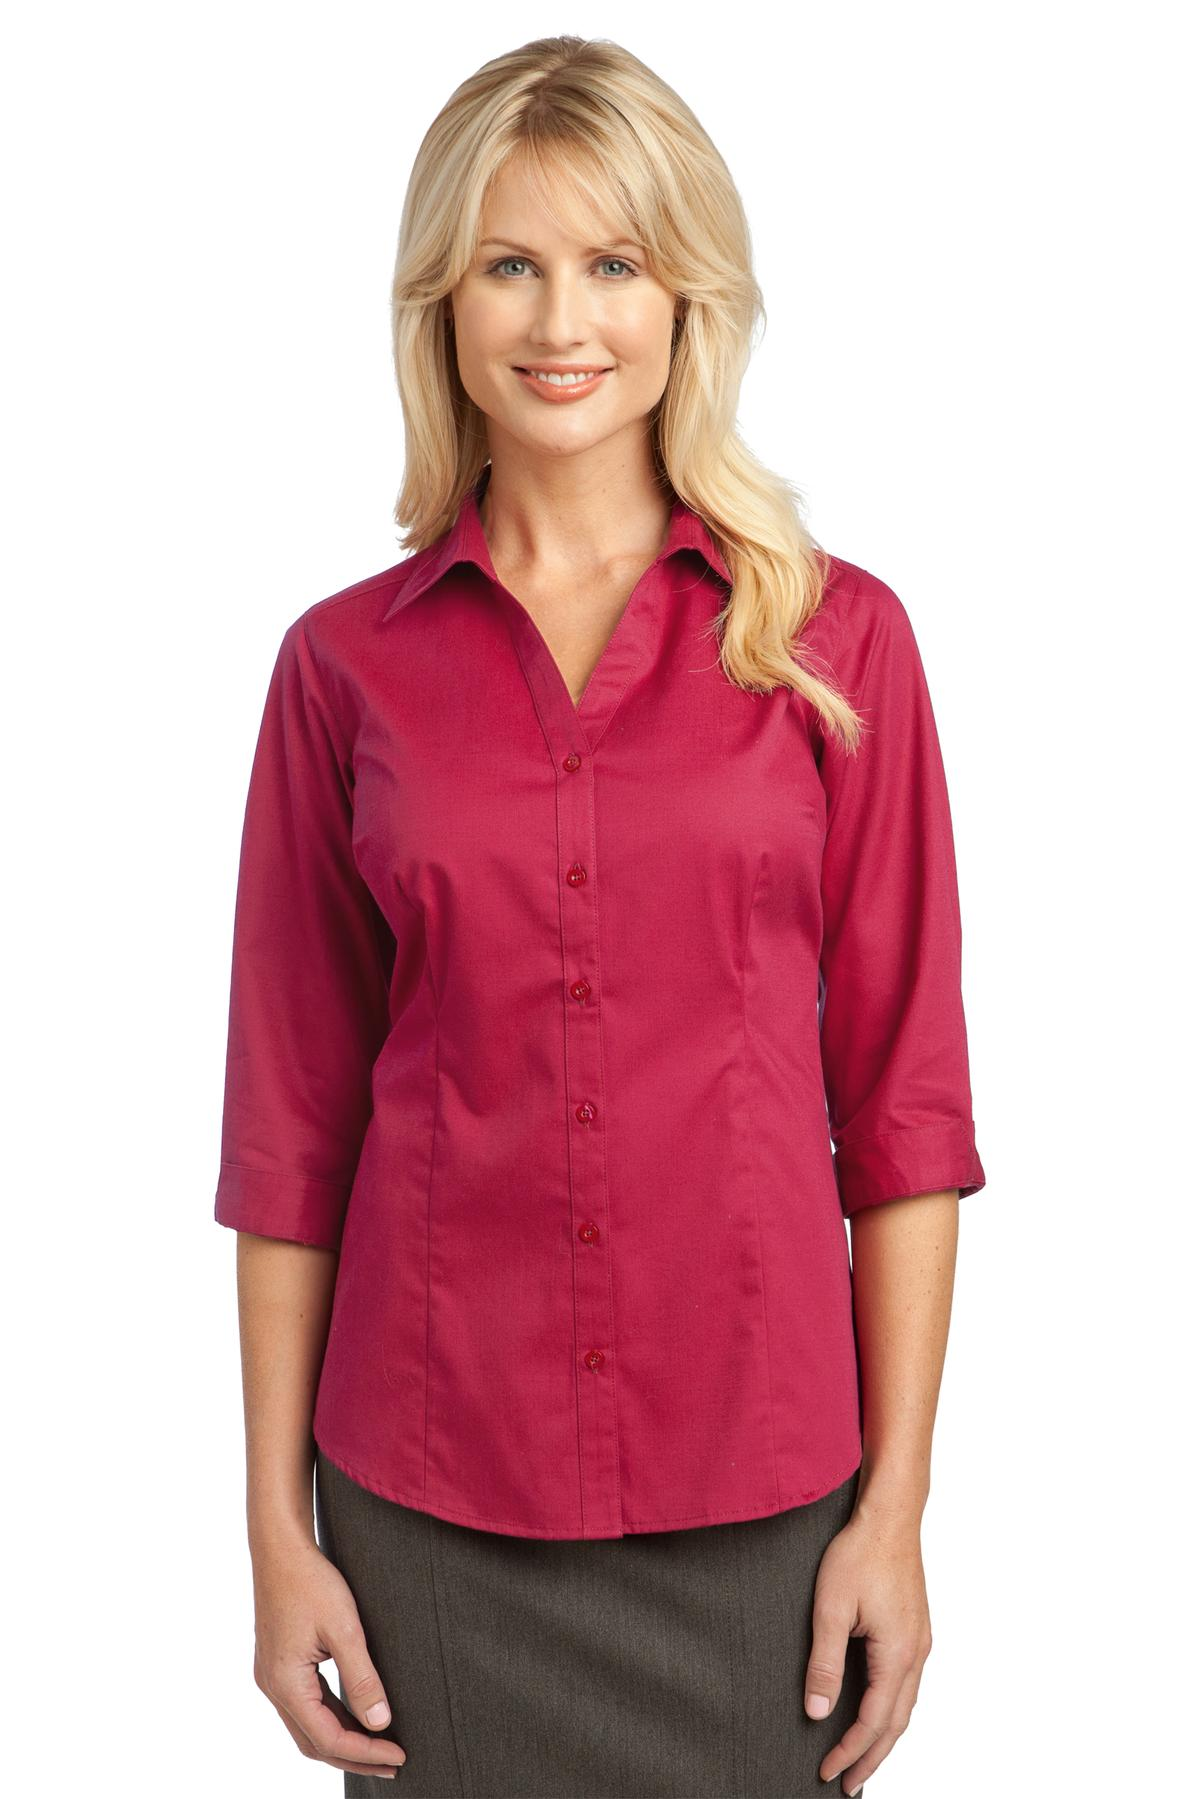 Sunburst Yellow Port Authority Ladies Dry Zone® UV Micro-Mesh Polo.